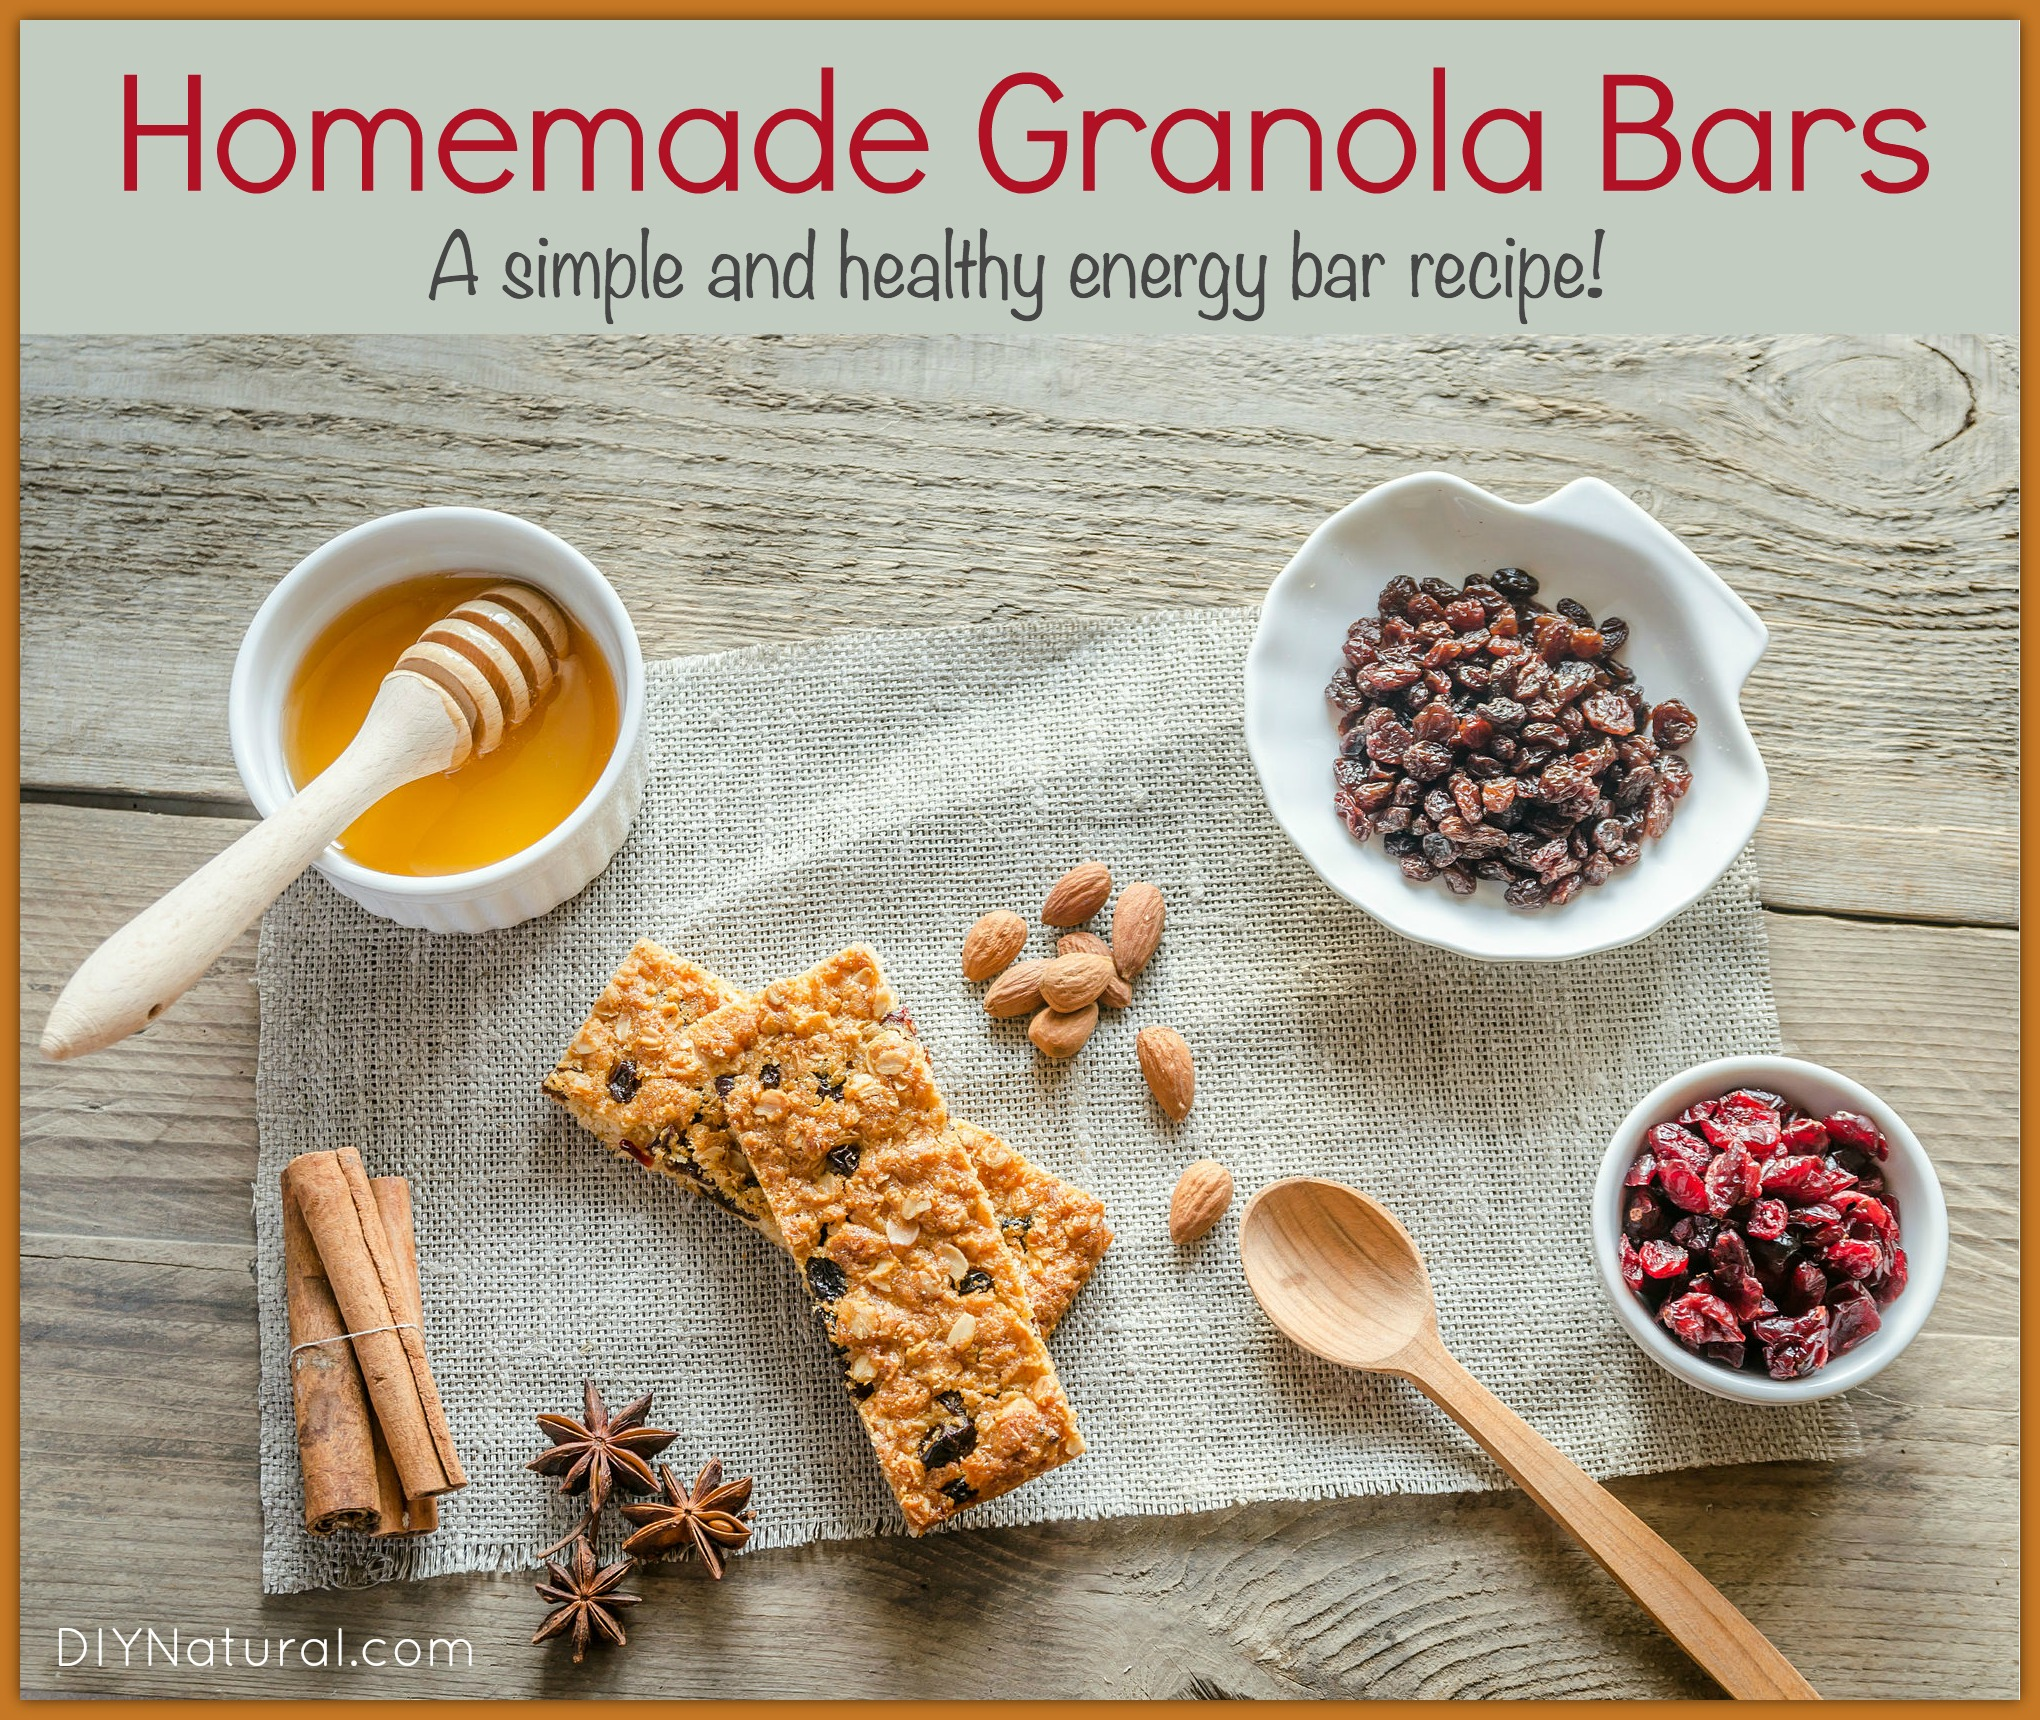 Homemade Granola Bars: Simple and Healthy Energy Bars